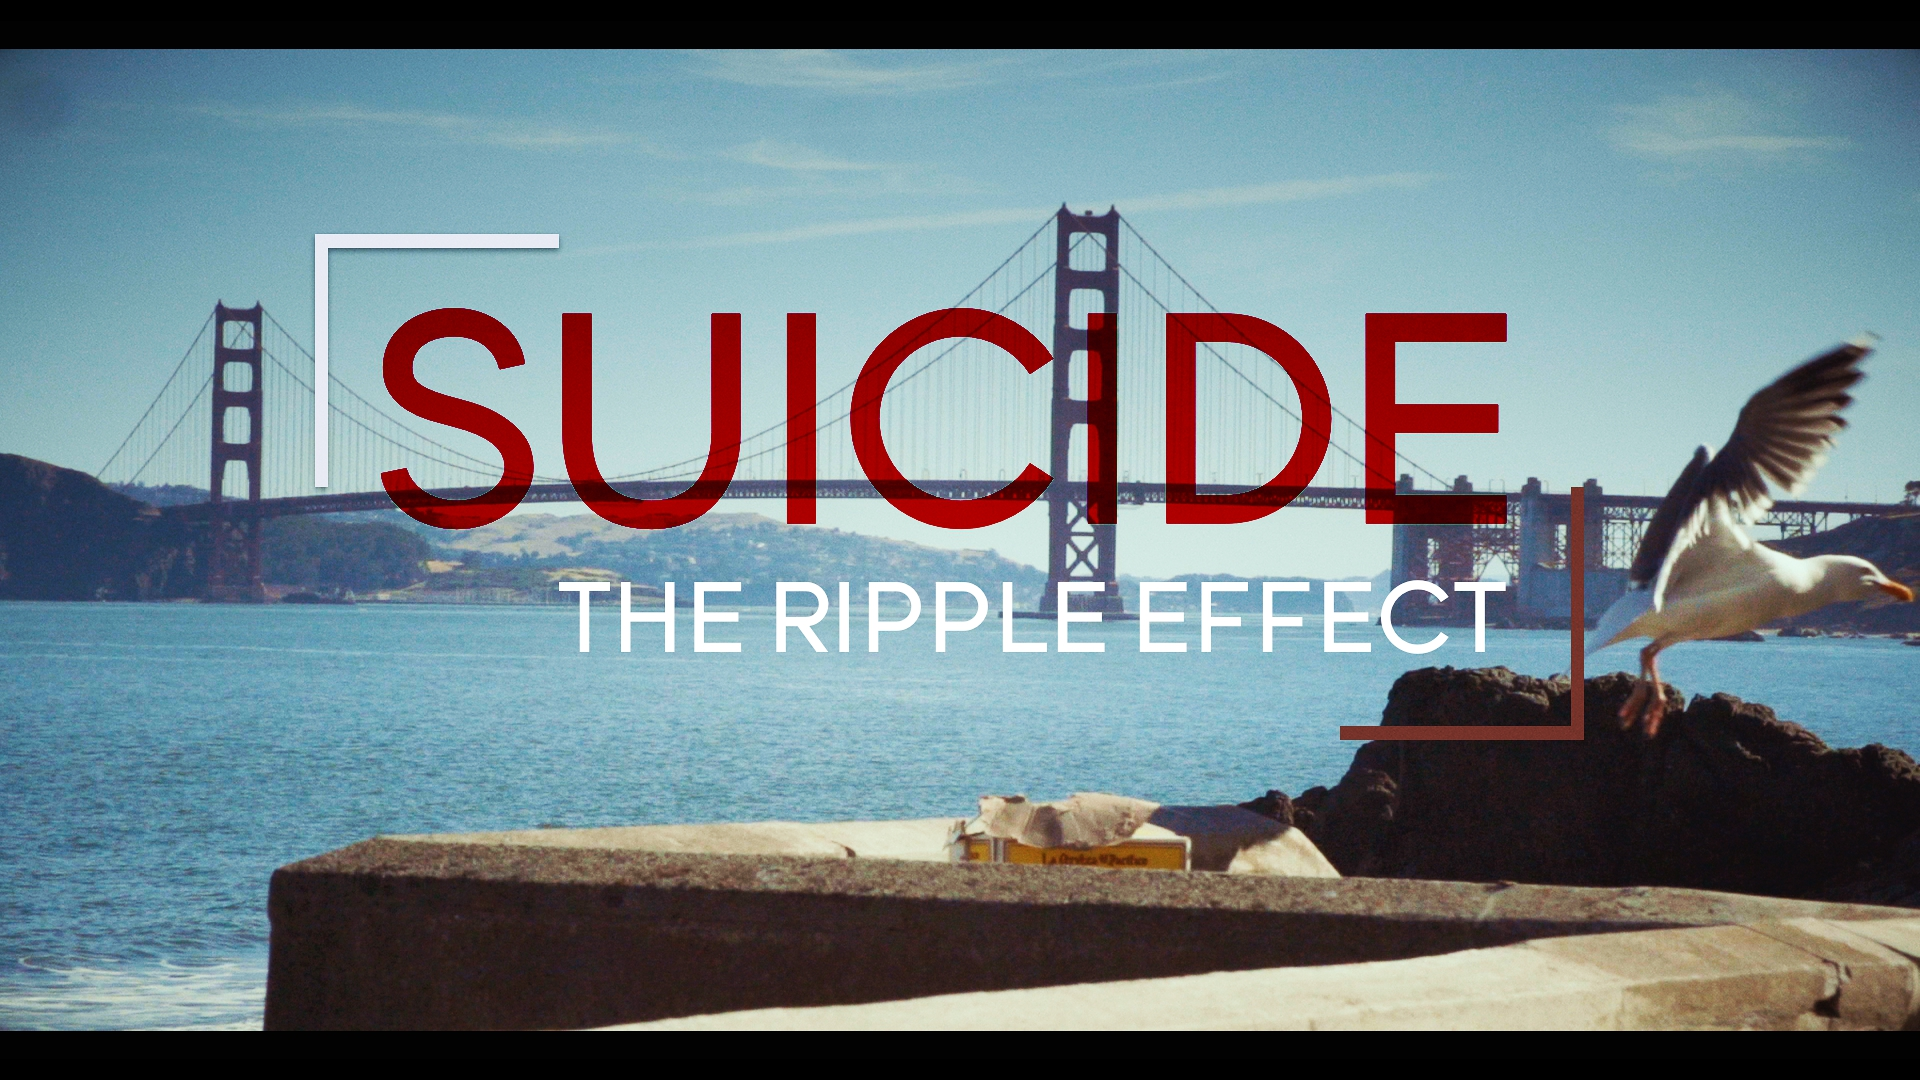 "DOCUMENTARY: SUICIDE THE RIPPLE EFFECT   ""Suicide: The Ripple Effect"" is a feature length documentary film and MOVEMENT, currently in production, focusing on the devastating effects of suicide and the tremendous positive ripple effects of advocacy, inspiration and hope that are helping millions heal & stay alive.   The film highlights the journey of Kevin Hines, who at age 19, attempted to take his life by jumping from the Golden Gate Bridge. Today Kevin is a world-renowned mental health advocate, motivational speaker and author who travels the globe spreading a message of hope, recovery and wellness.   The film chronicles Kevin's personal journey and the ripple effect it has on those who have been impacted by his suicide attempt and his life's work since.  In addition, the film highlights the stories of individuals and families who are utilizing their personal tragedy to bring hope and healing to others."